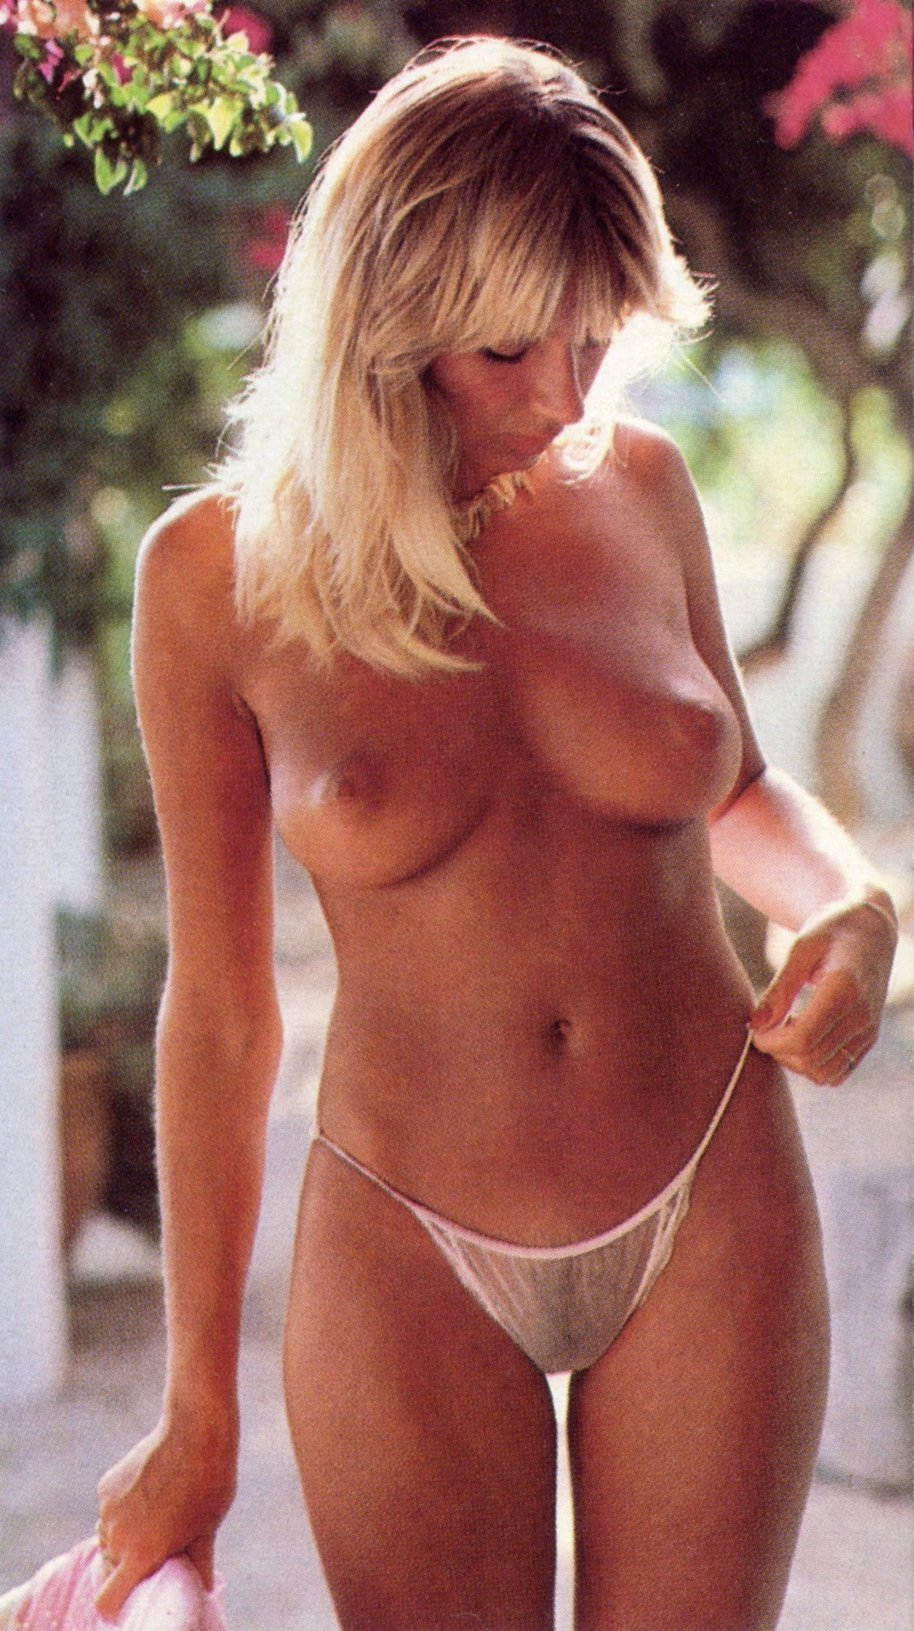 Tracy smith nude